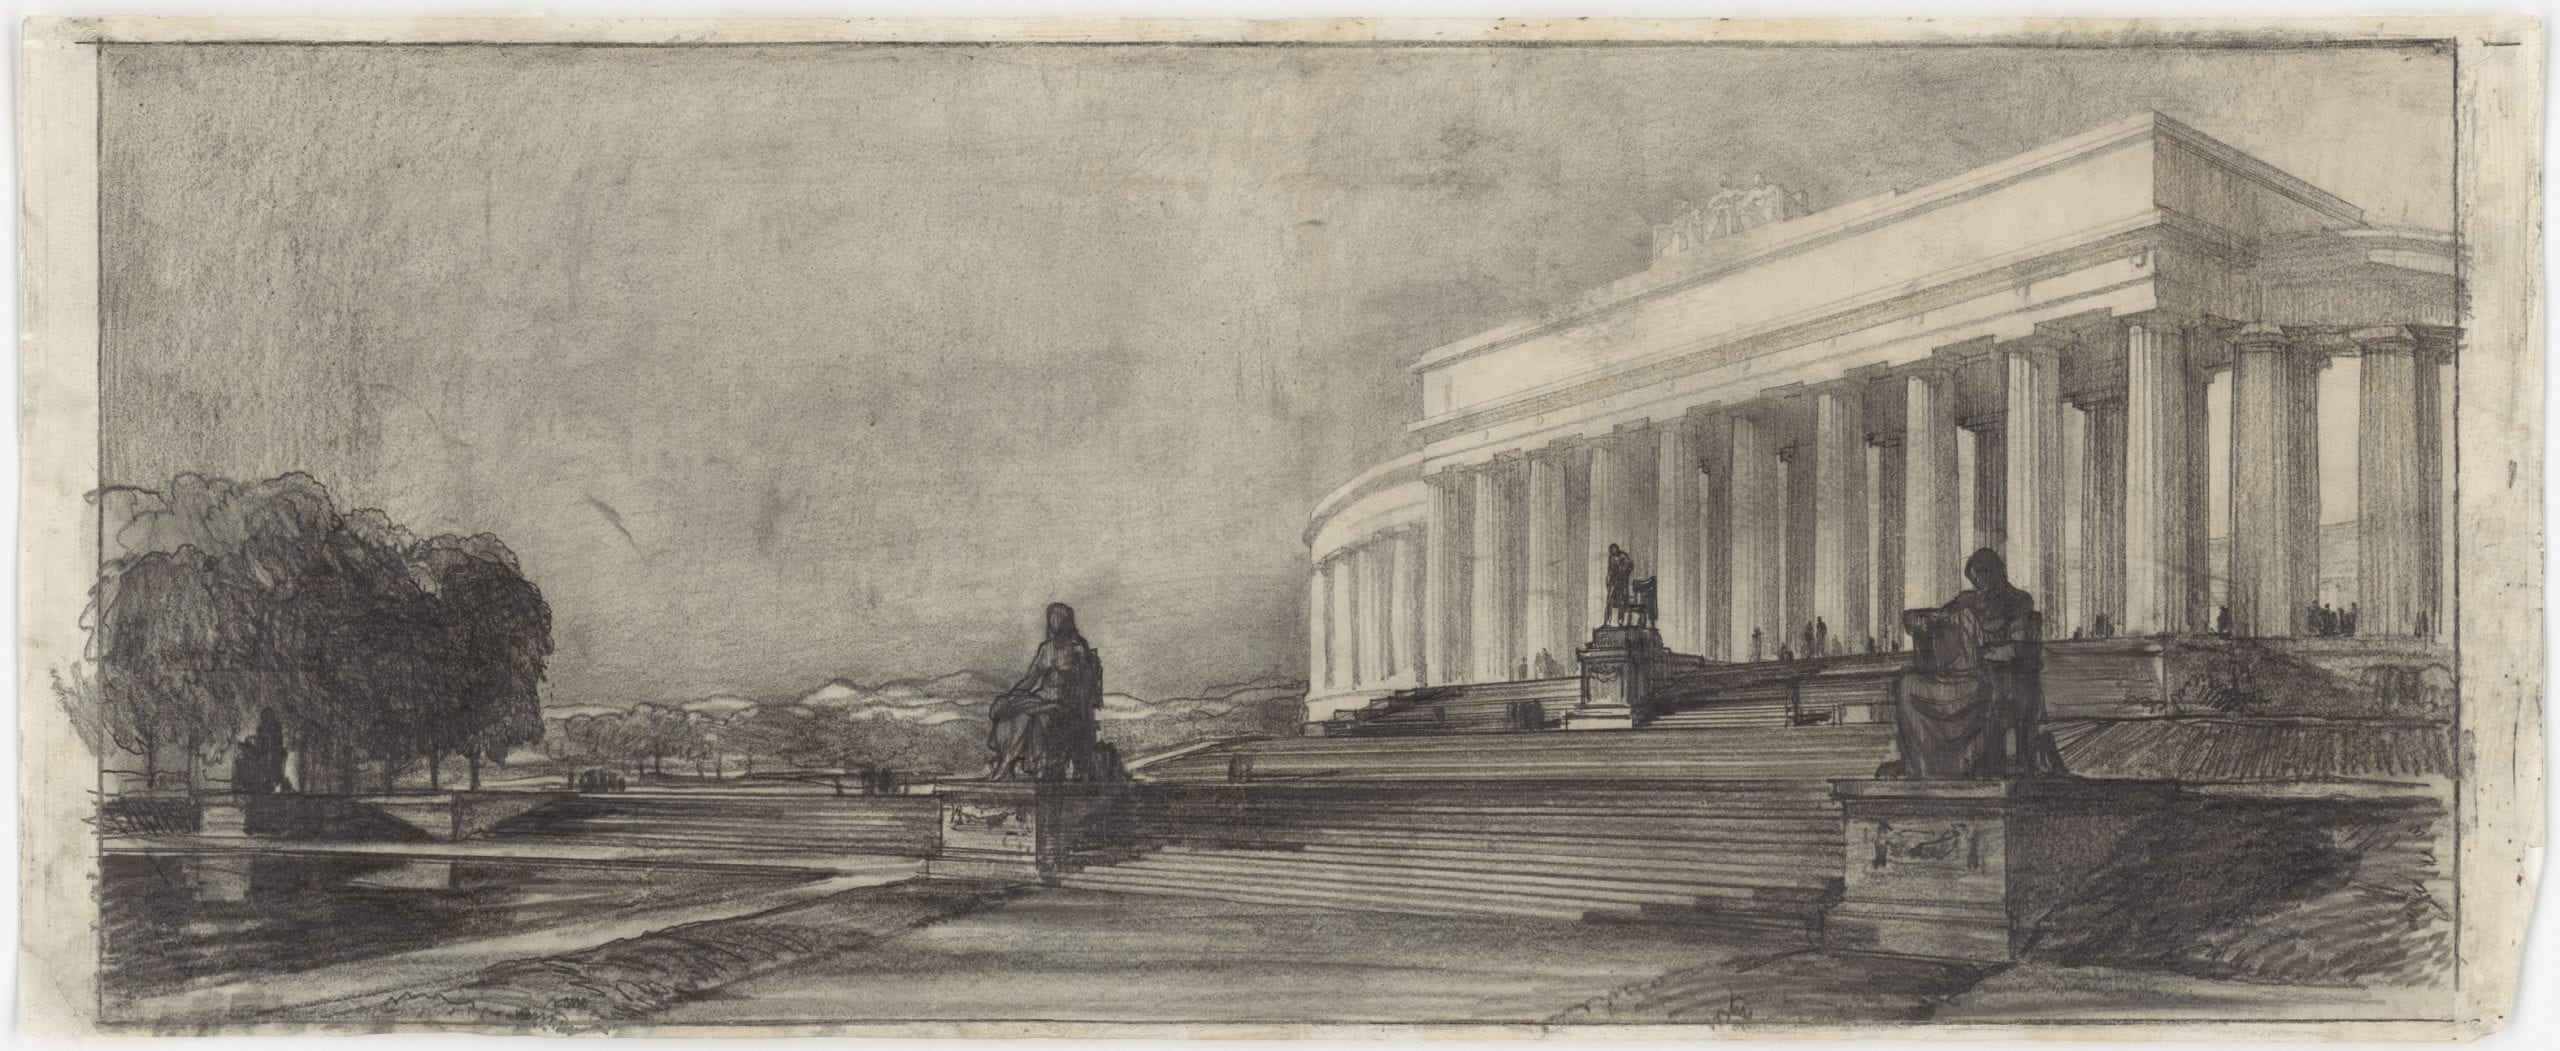 John Russell Pope's Competition Proposal for a Circular Colonnade Style Monument to Abraham Lincoln, 1912